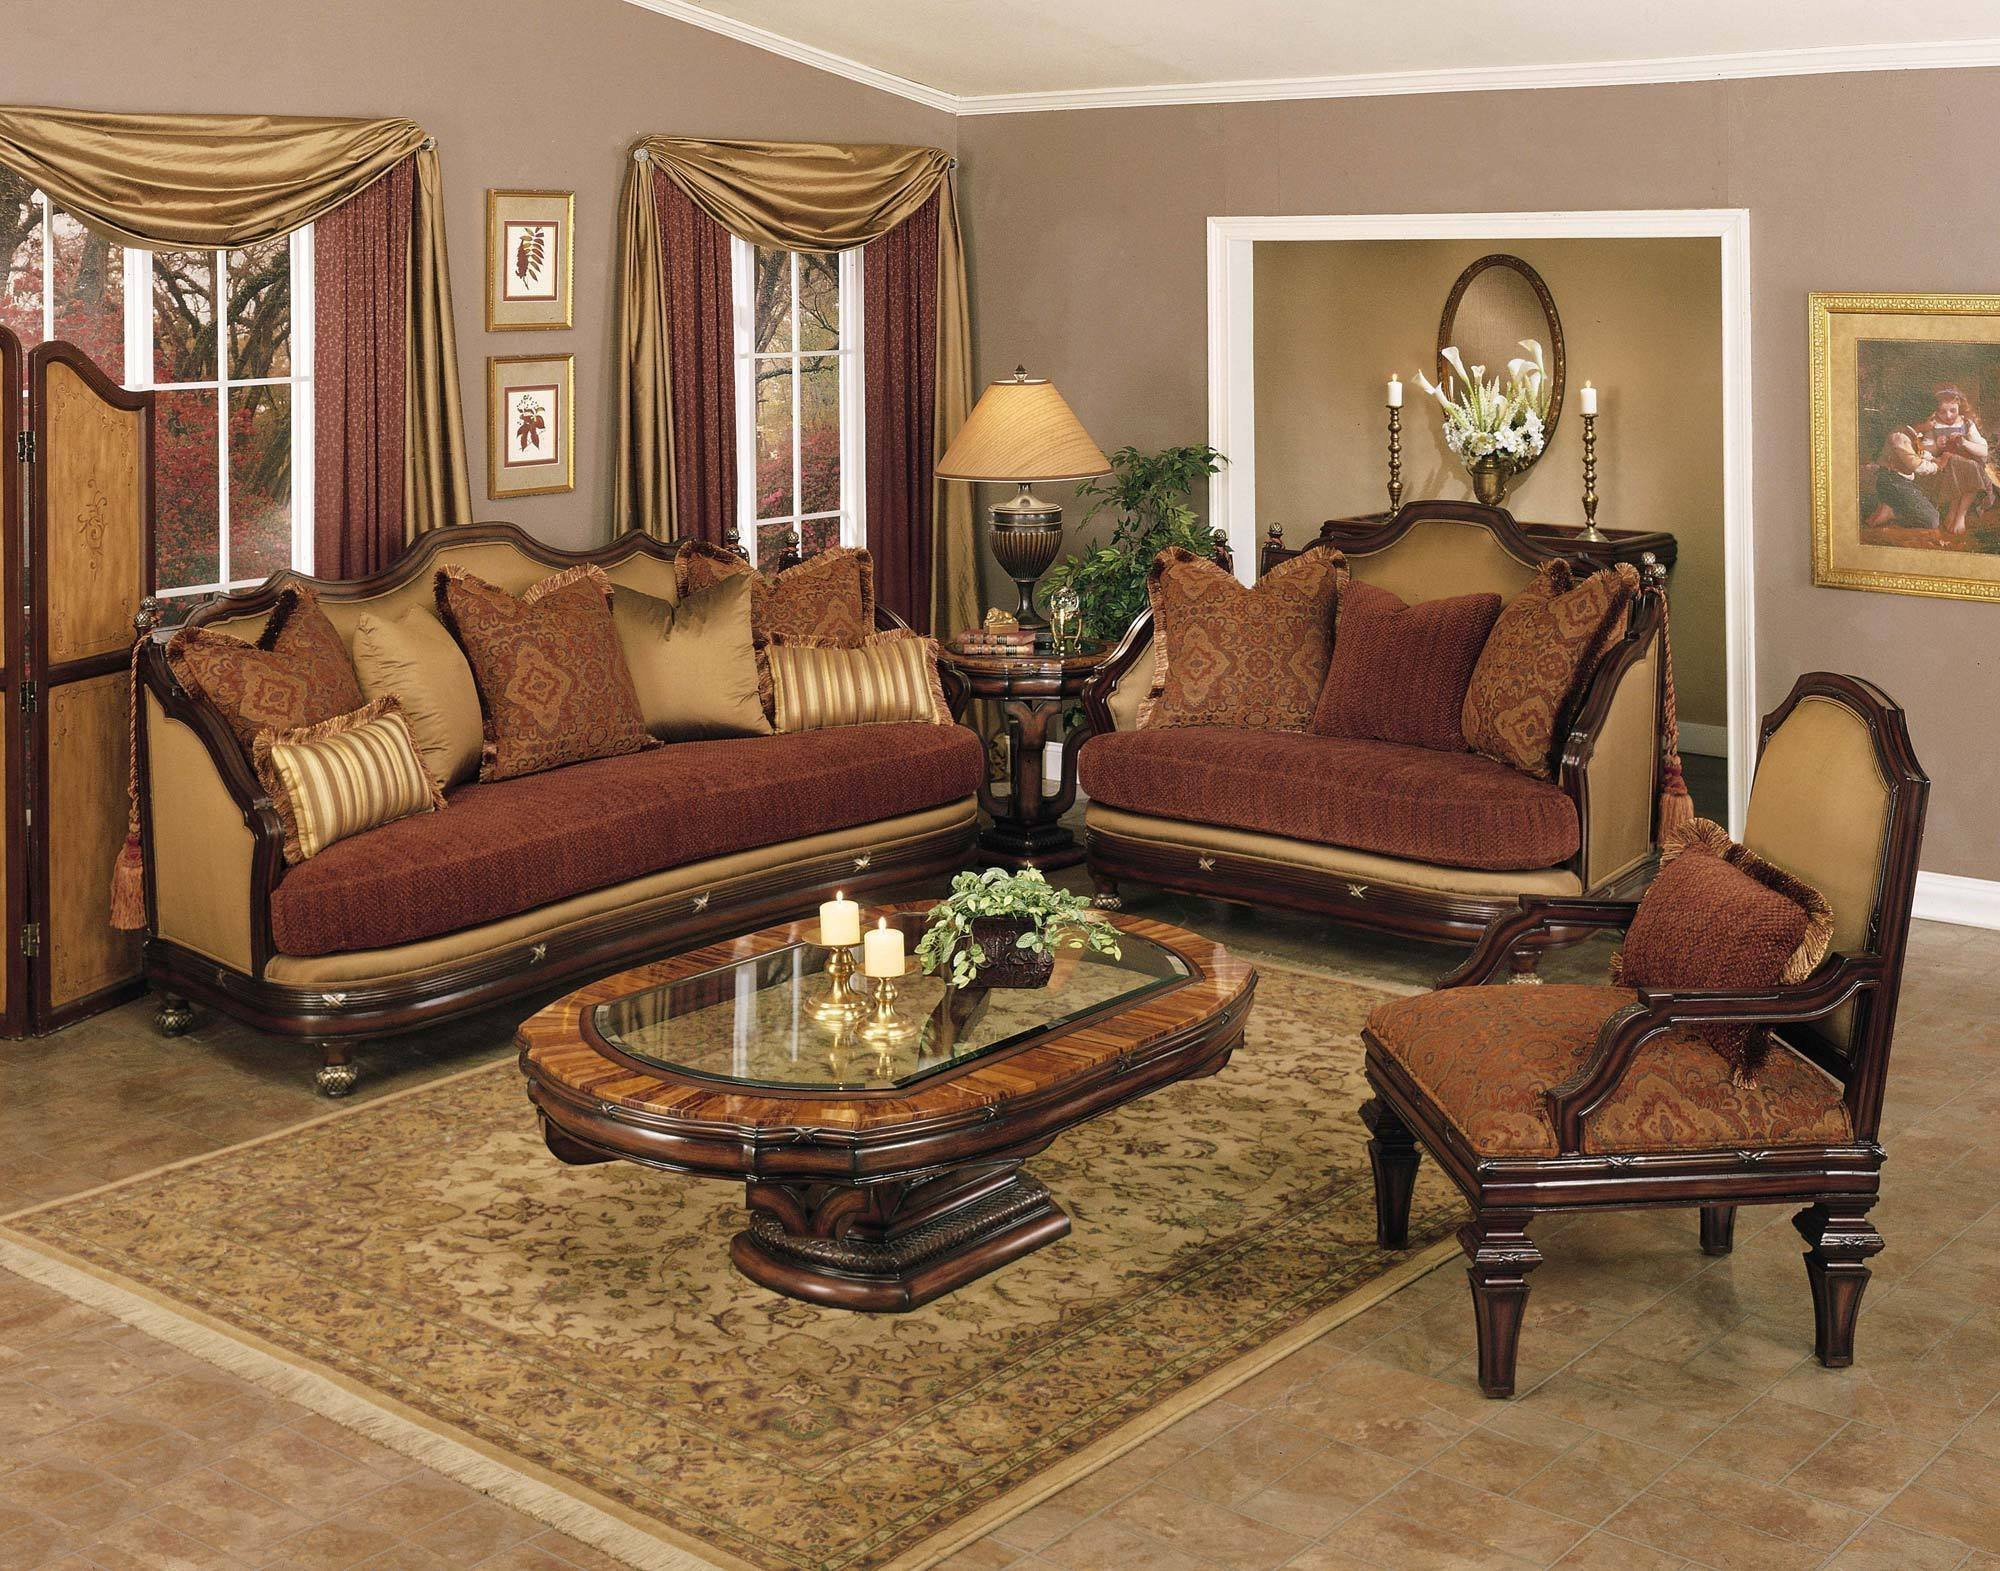 Traditional Living Room Furniture Best Of Traditional Fabric Covered Living Room Set Living Room Furniture Living Room Sets sofas